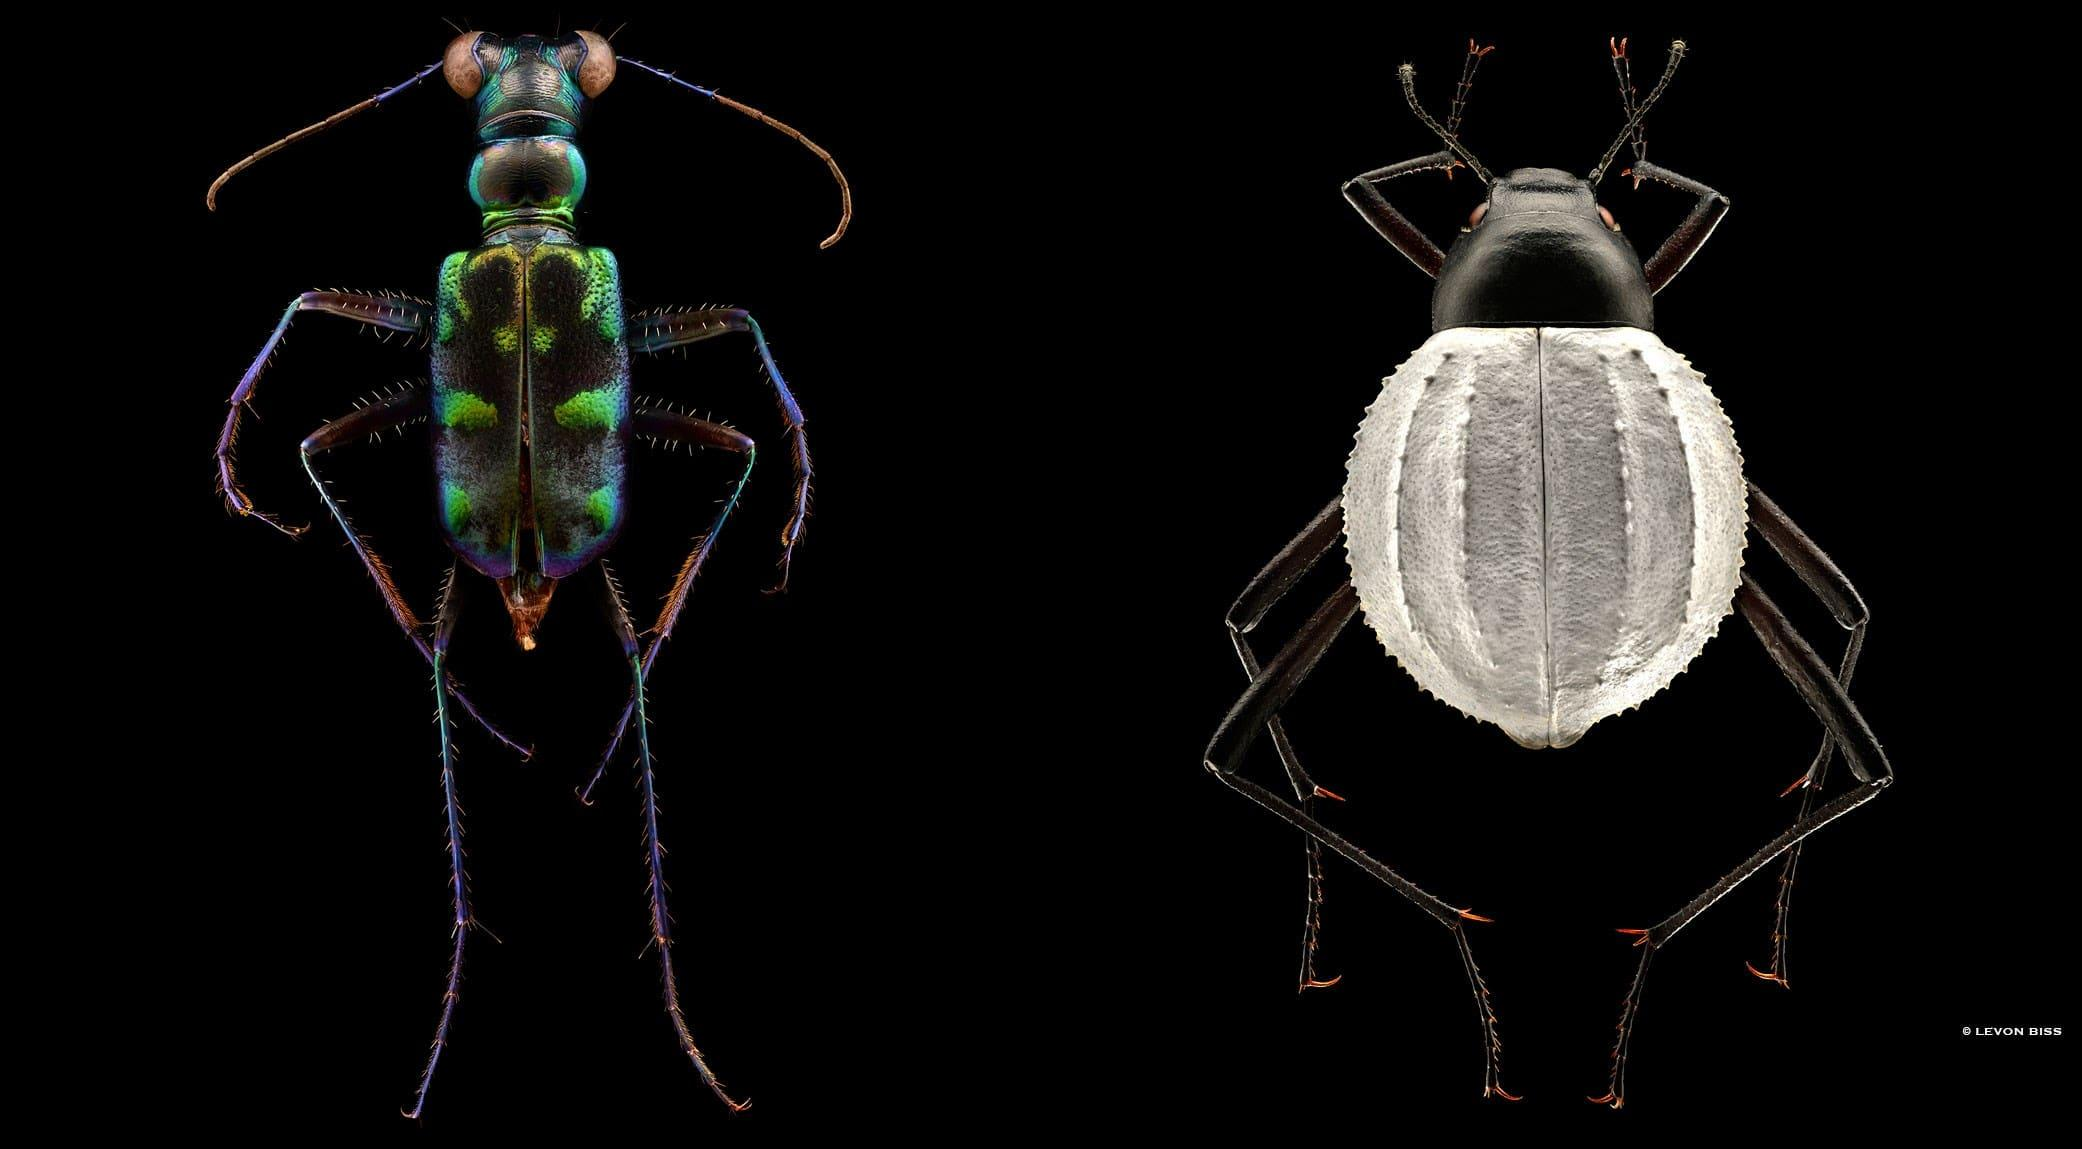 Tiger Beetle | Darkling Beetle